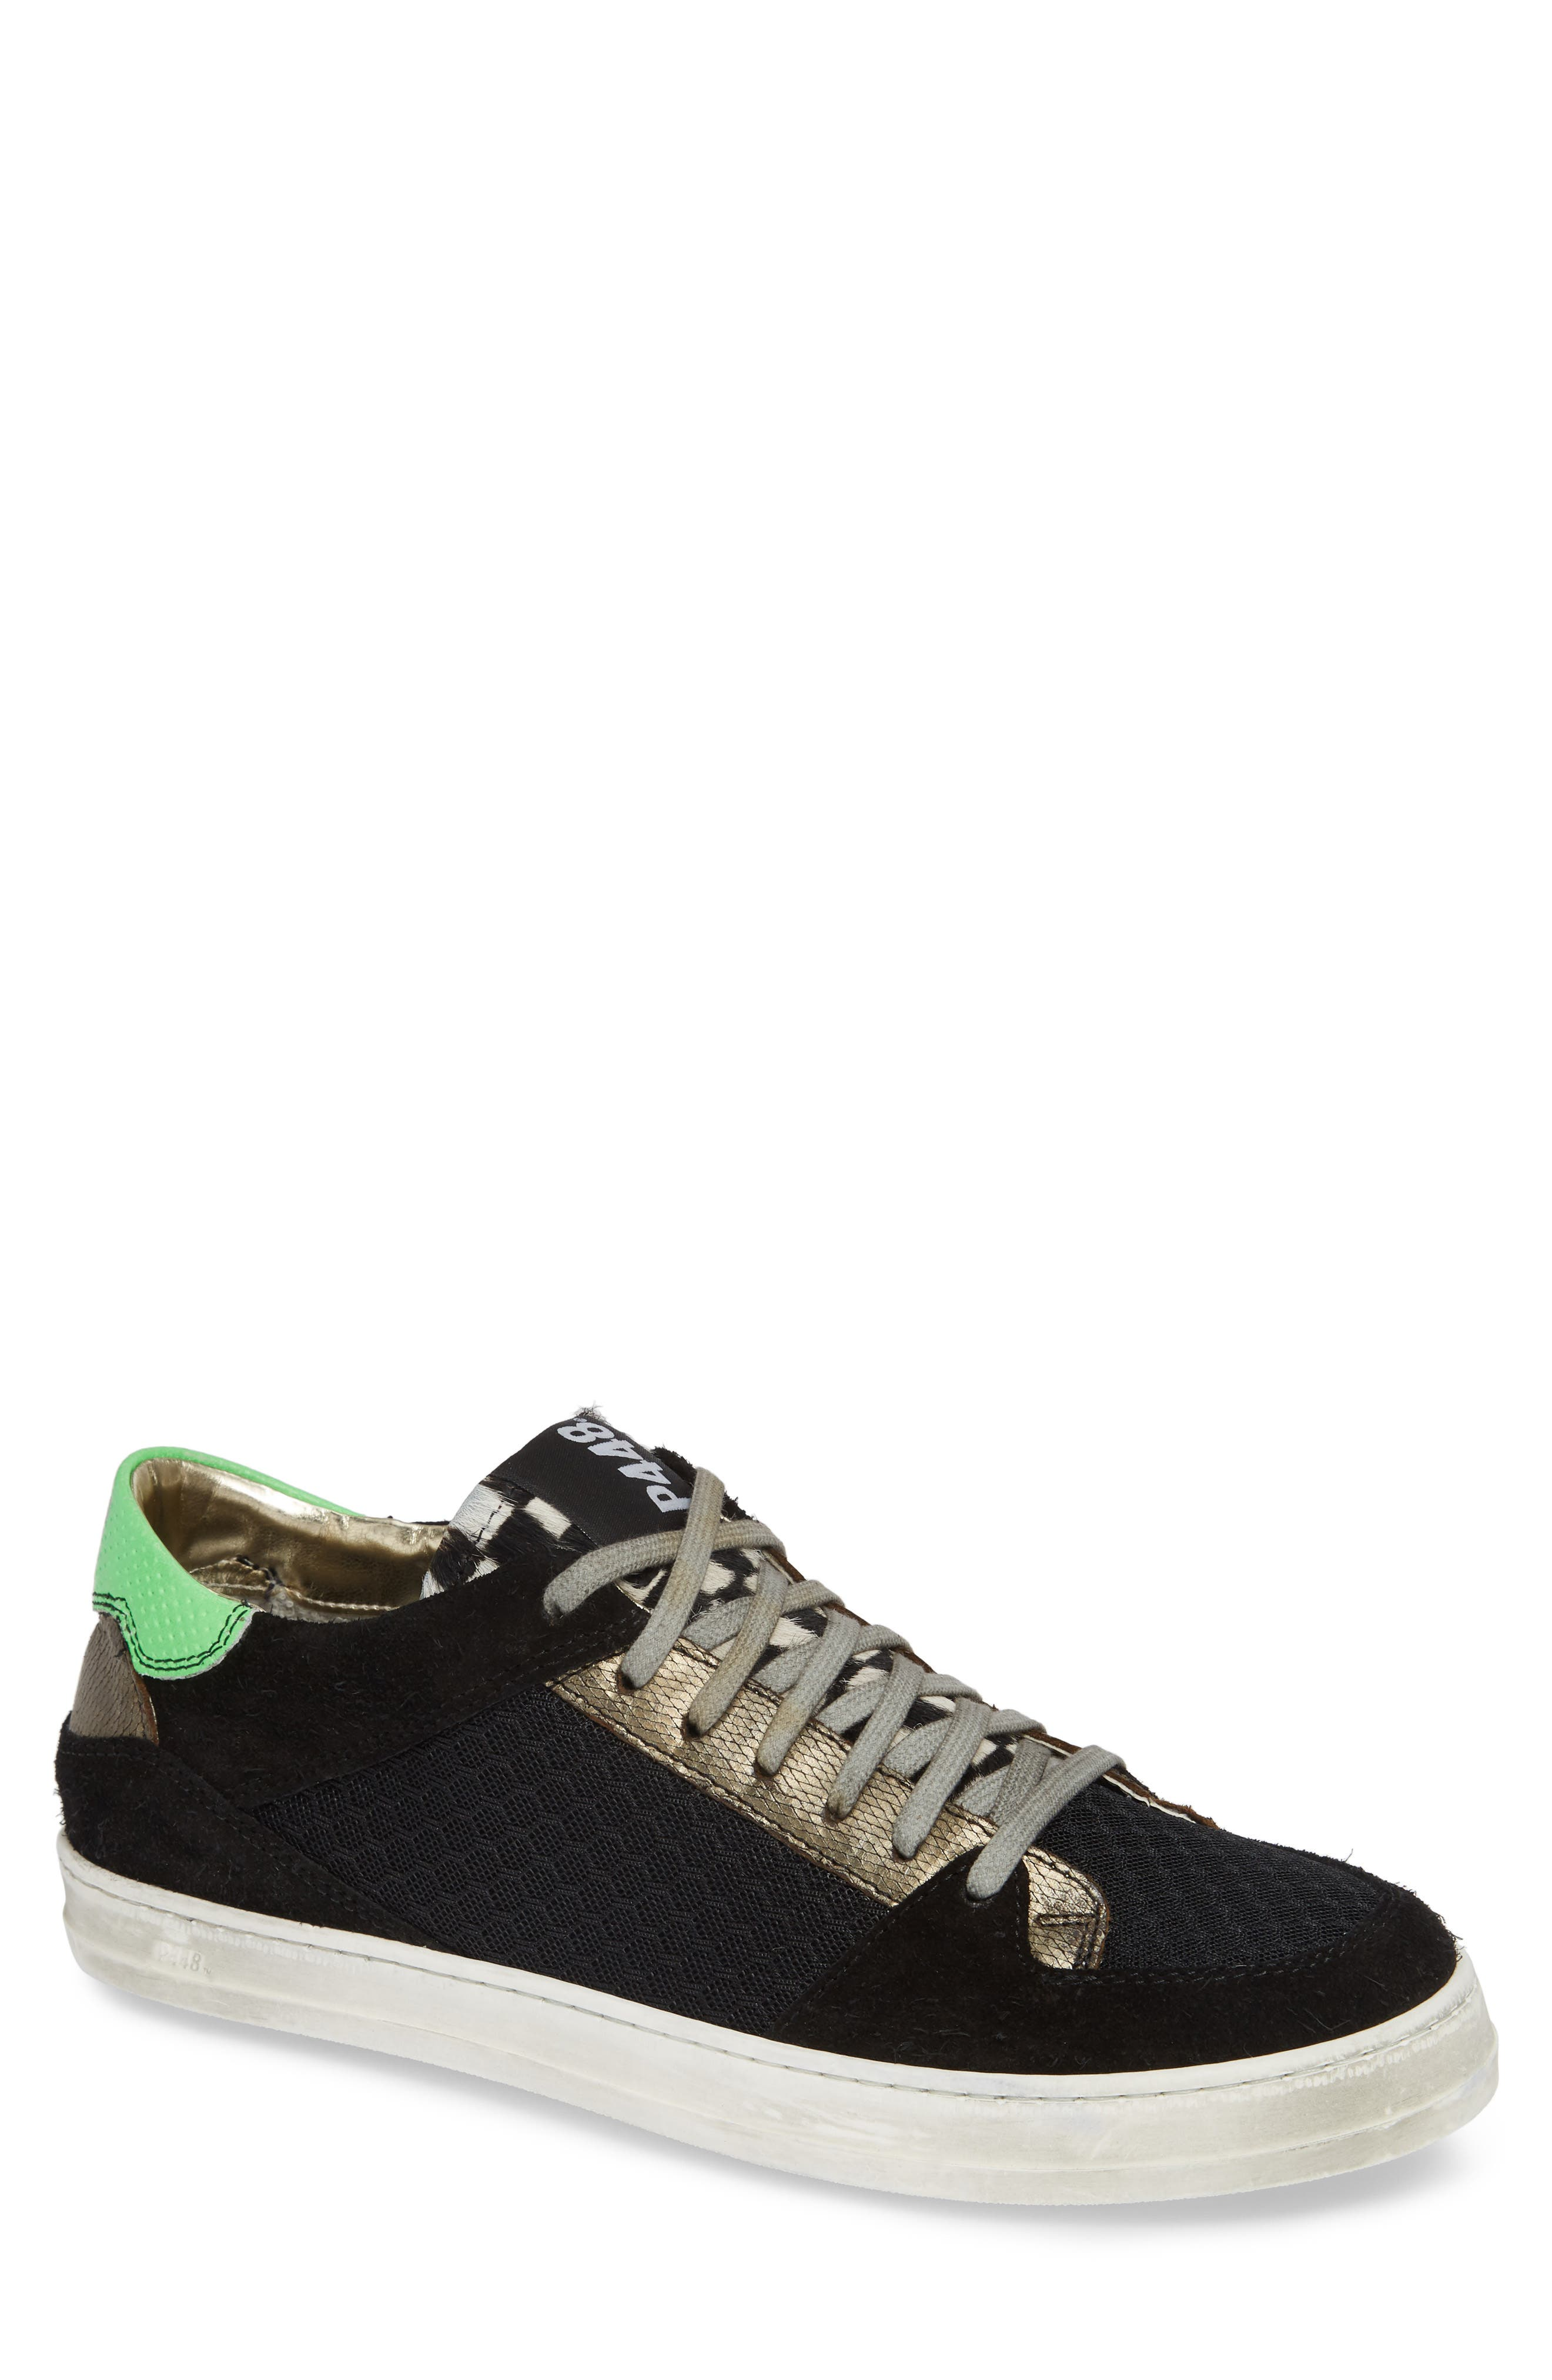 A8Queens Sneaker,                         Main,                         color, BLACK